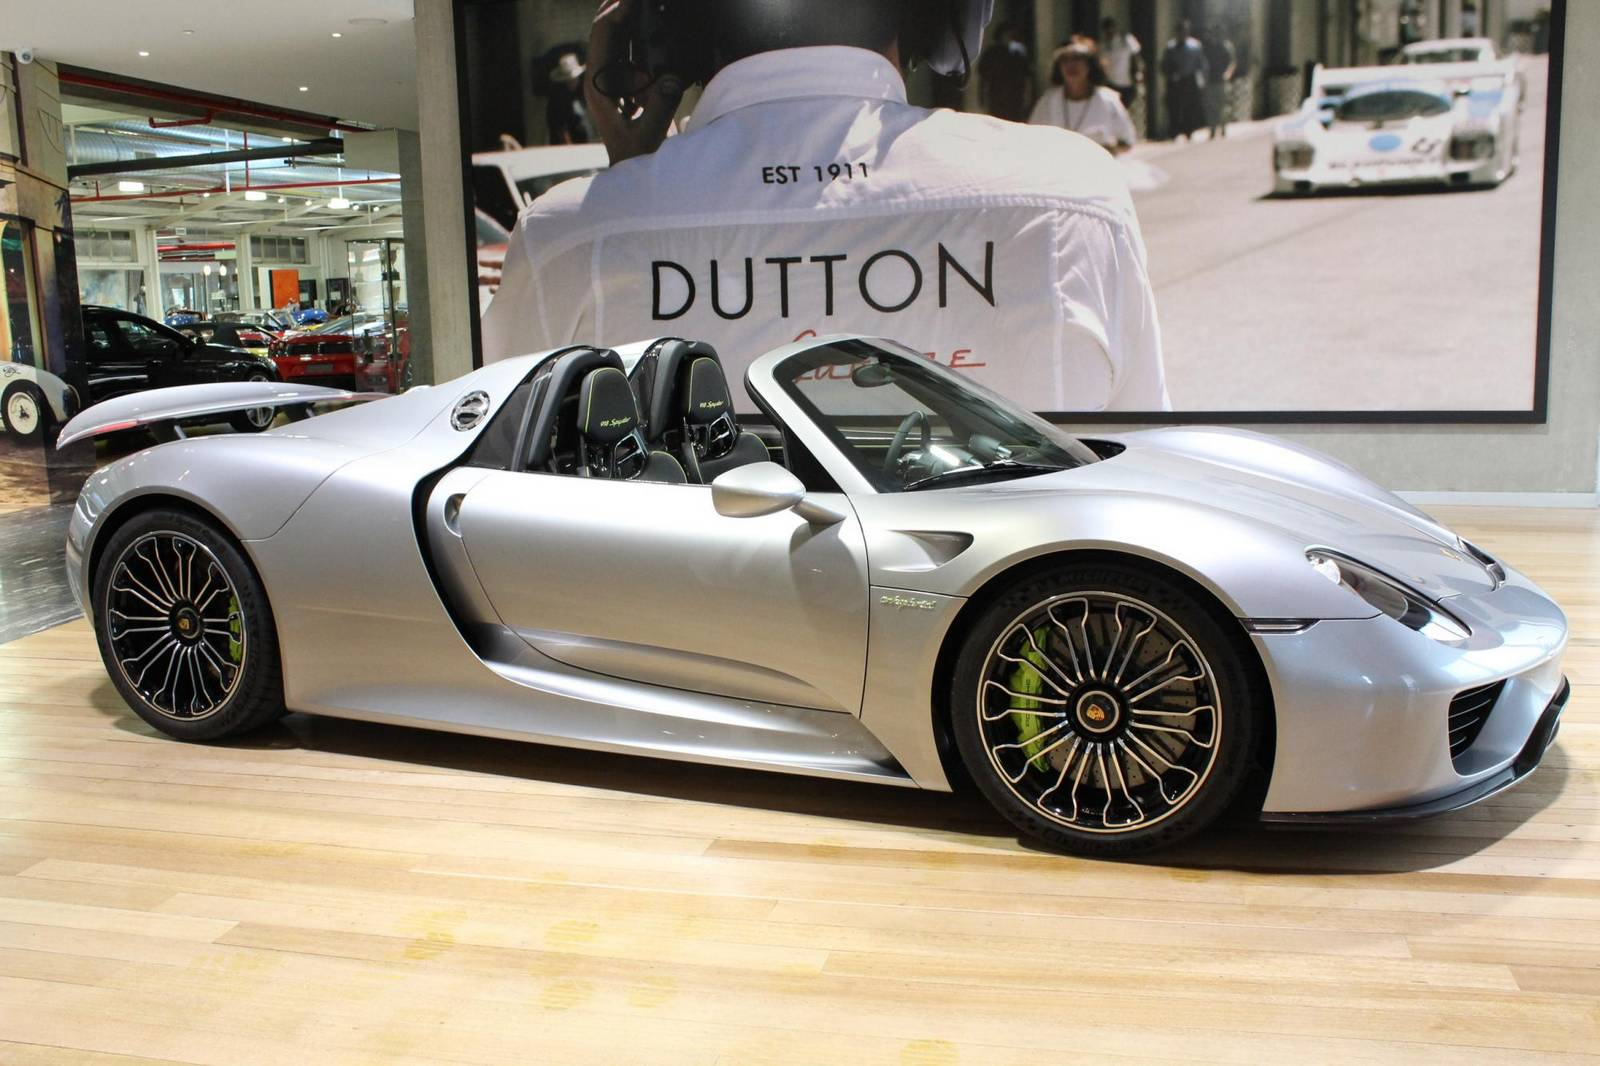 Porsche 918 Spyder For Sale >> Silver Porsche 918 Spyder For Sale In Australia Gtspirit